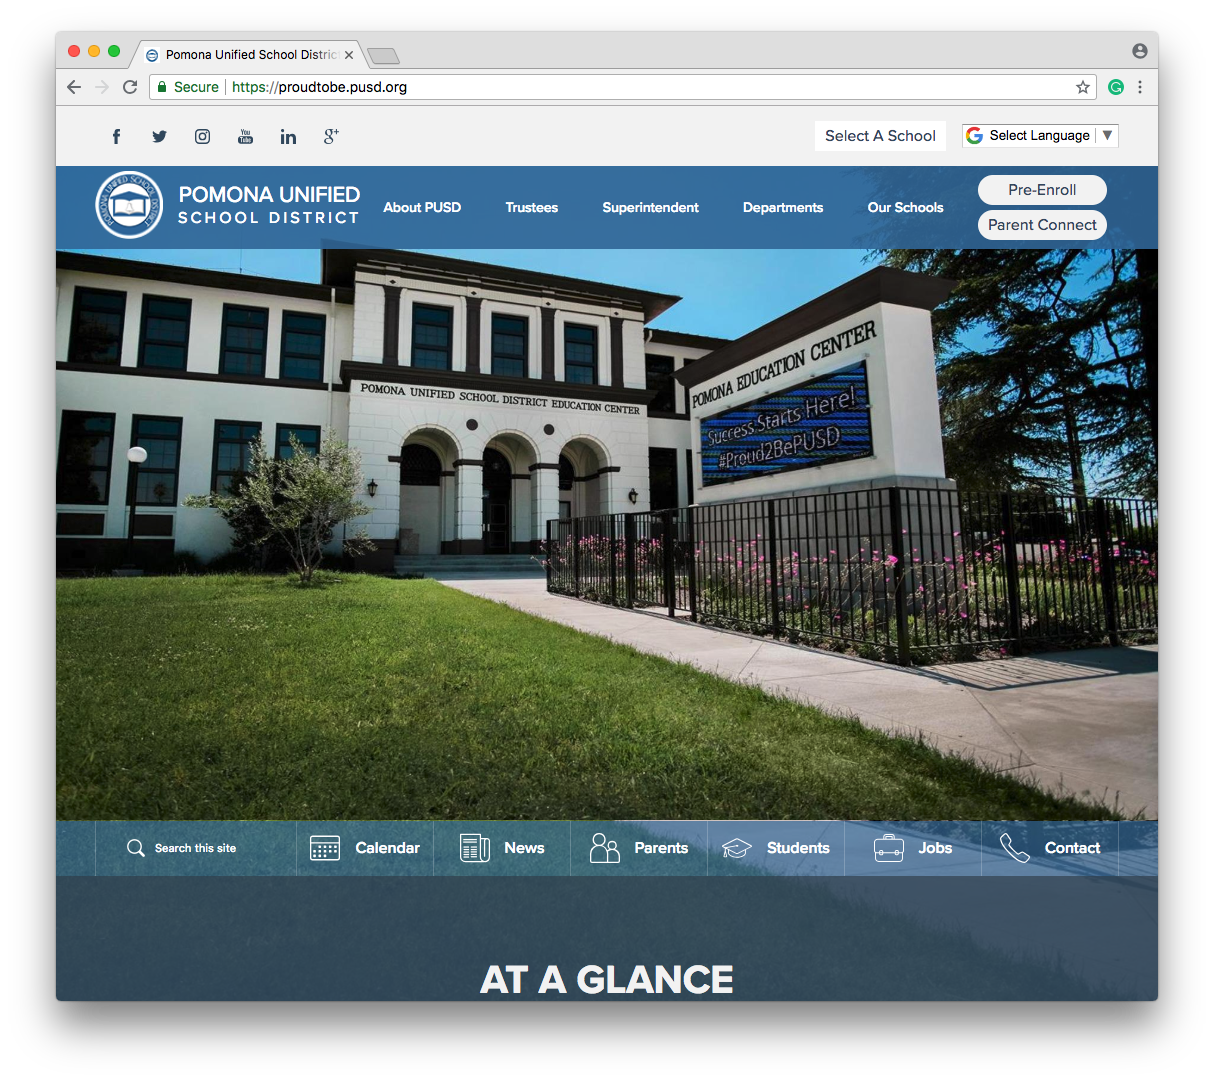 pomona unified school district is this weeks featured school website design they came to us seeking a custom design that emphasizes their schools motto